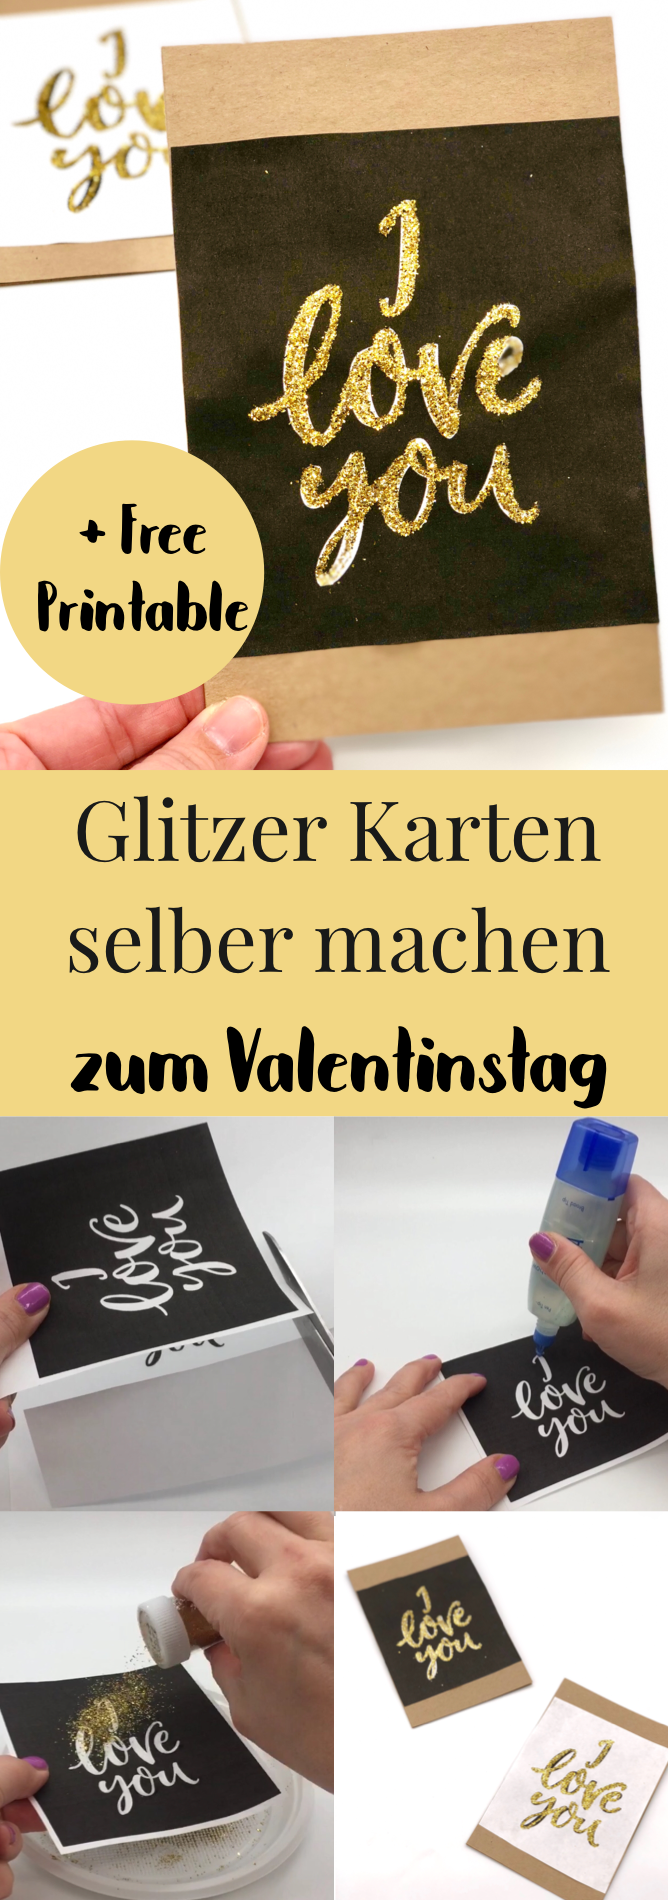 valentinstag karte selber machen geschenke f r den freund mit video deutsche diy blogger. Black Bedroom Furniture Sets. Home Design Ideas